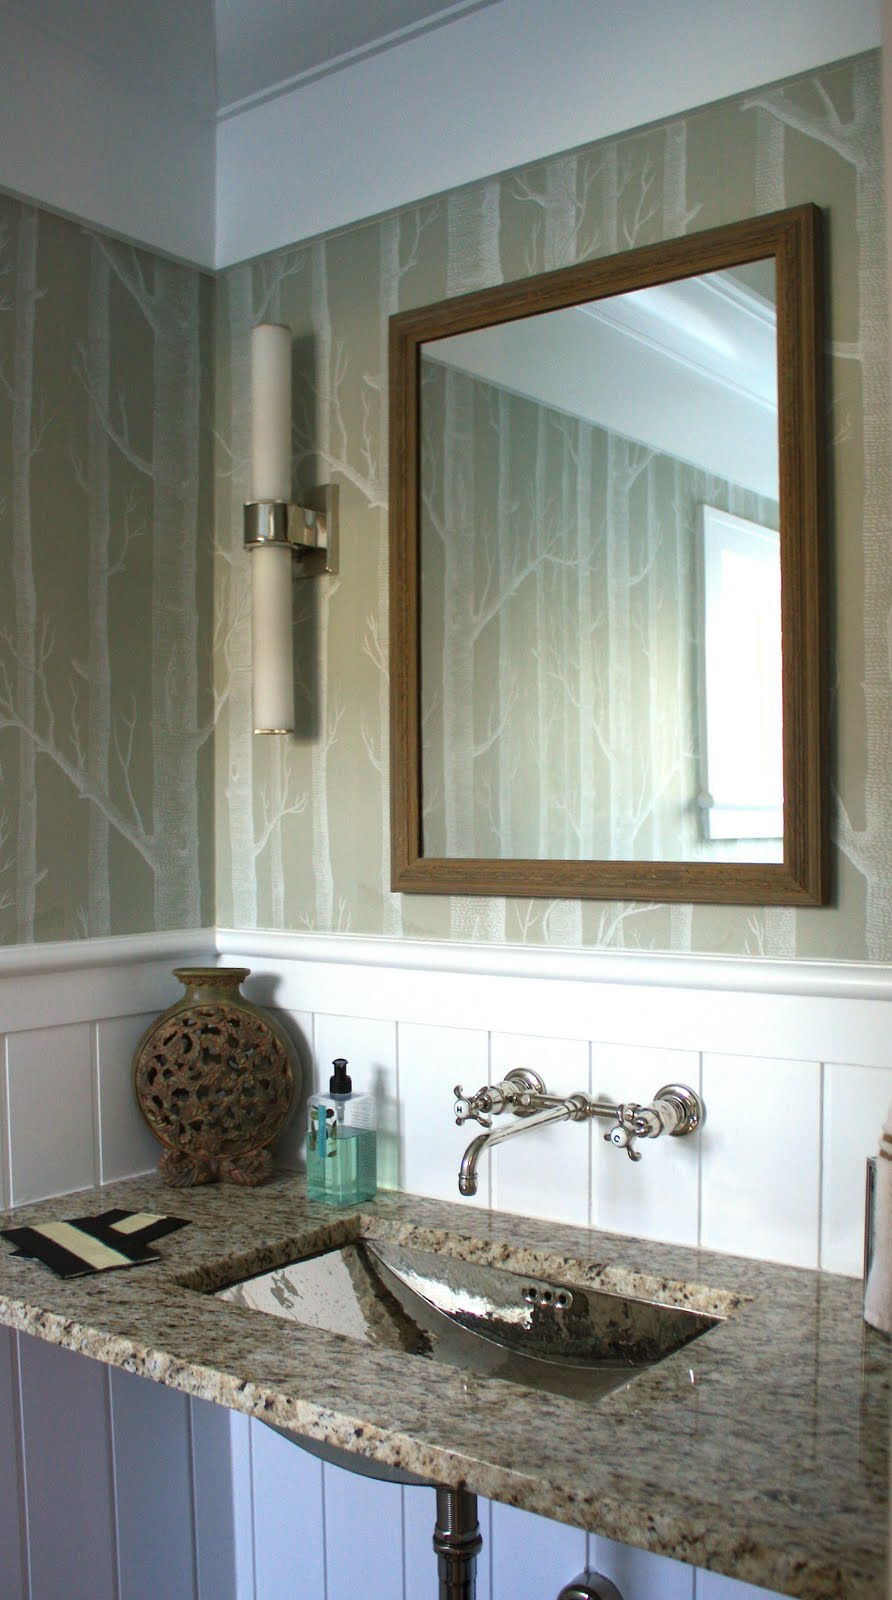 New small bathroom ideas photo gallery 2012 screen media for Small bathroom ideas 2012